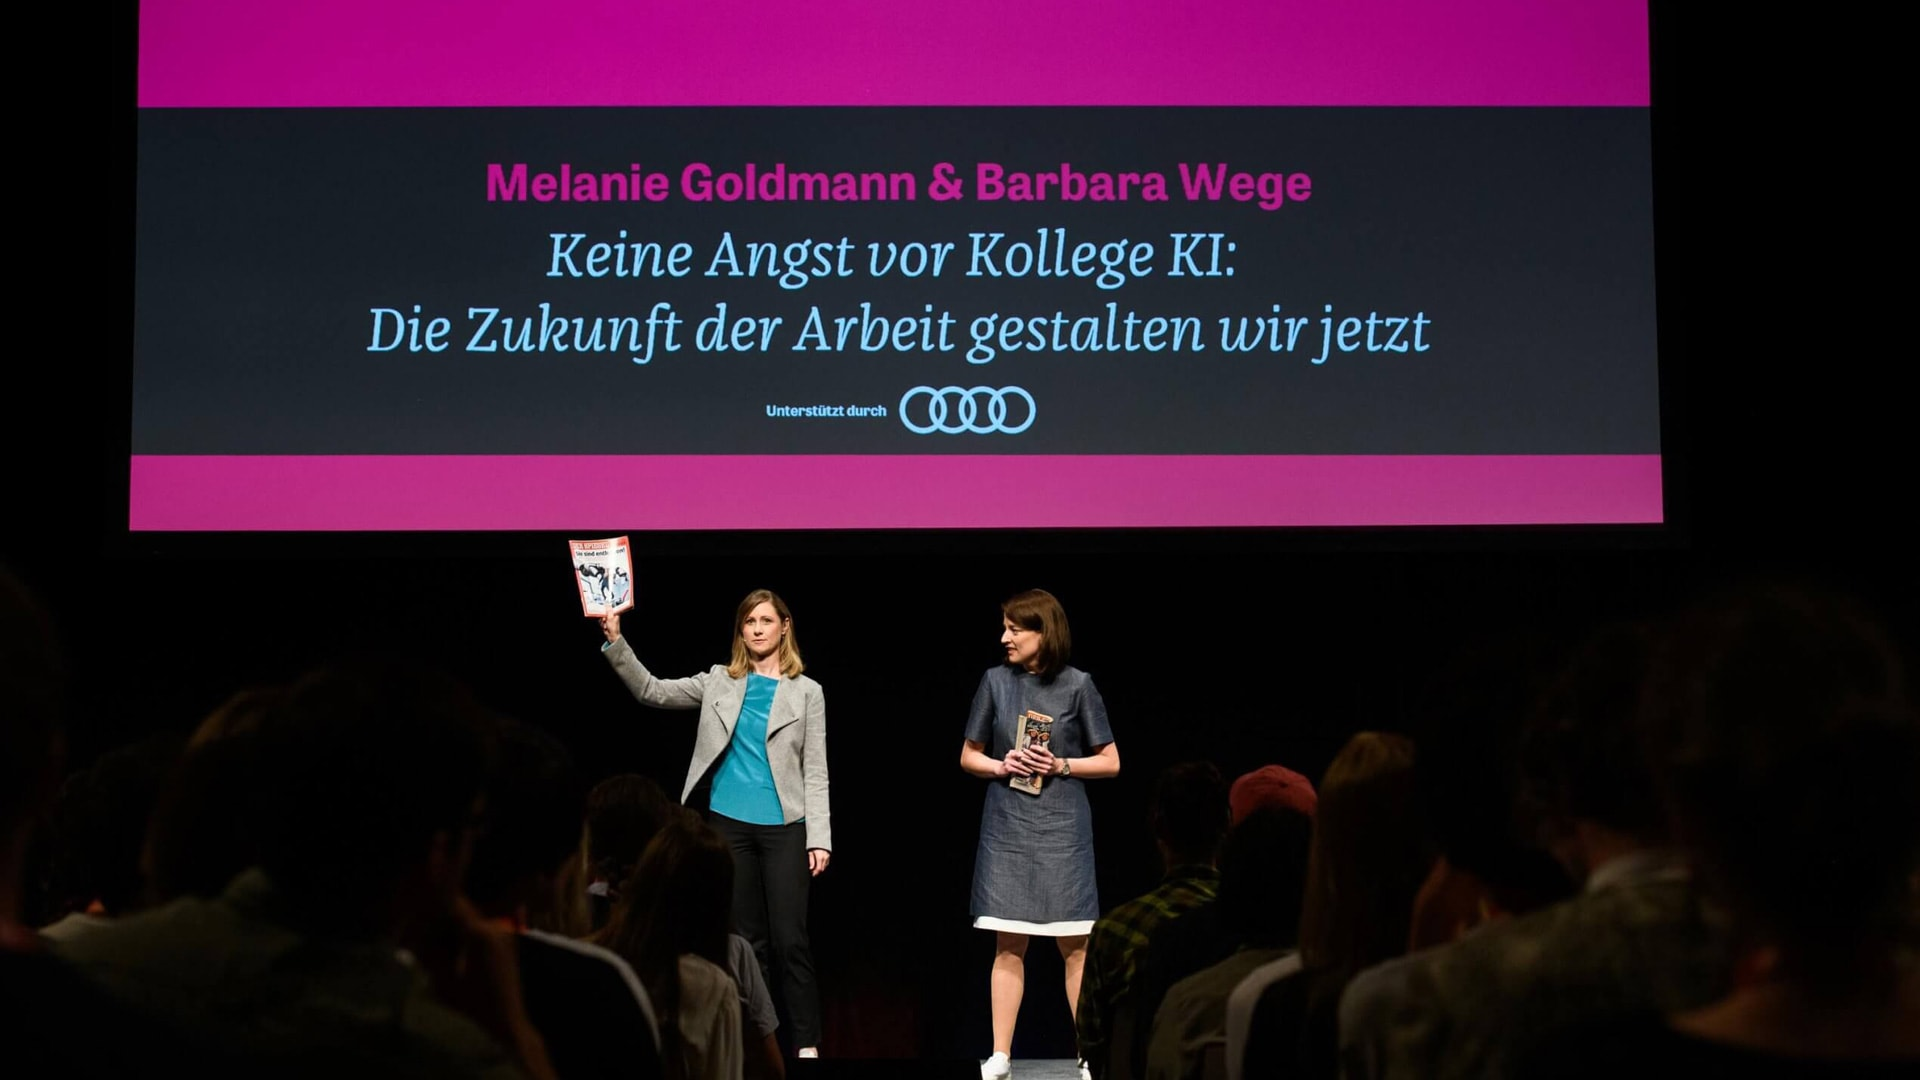 Z2X: speech of Melanie Goldmann, Barbara Wege